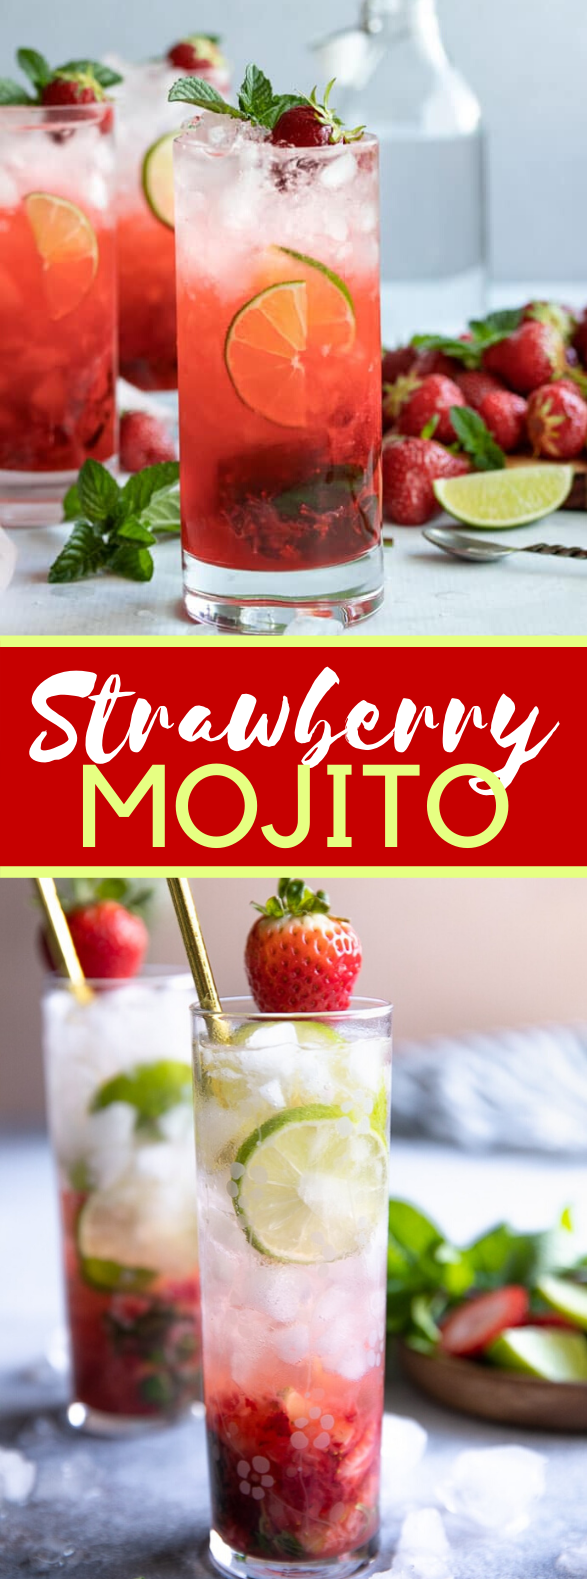 STRAWBERRY MOJITO RECIPE #drinks #cocktails